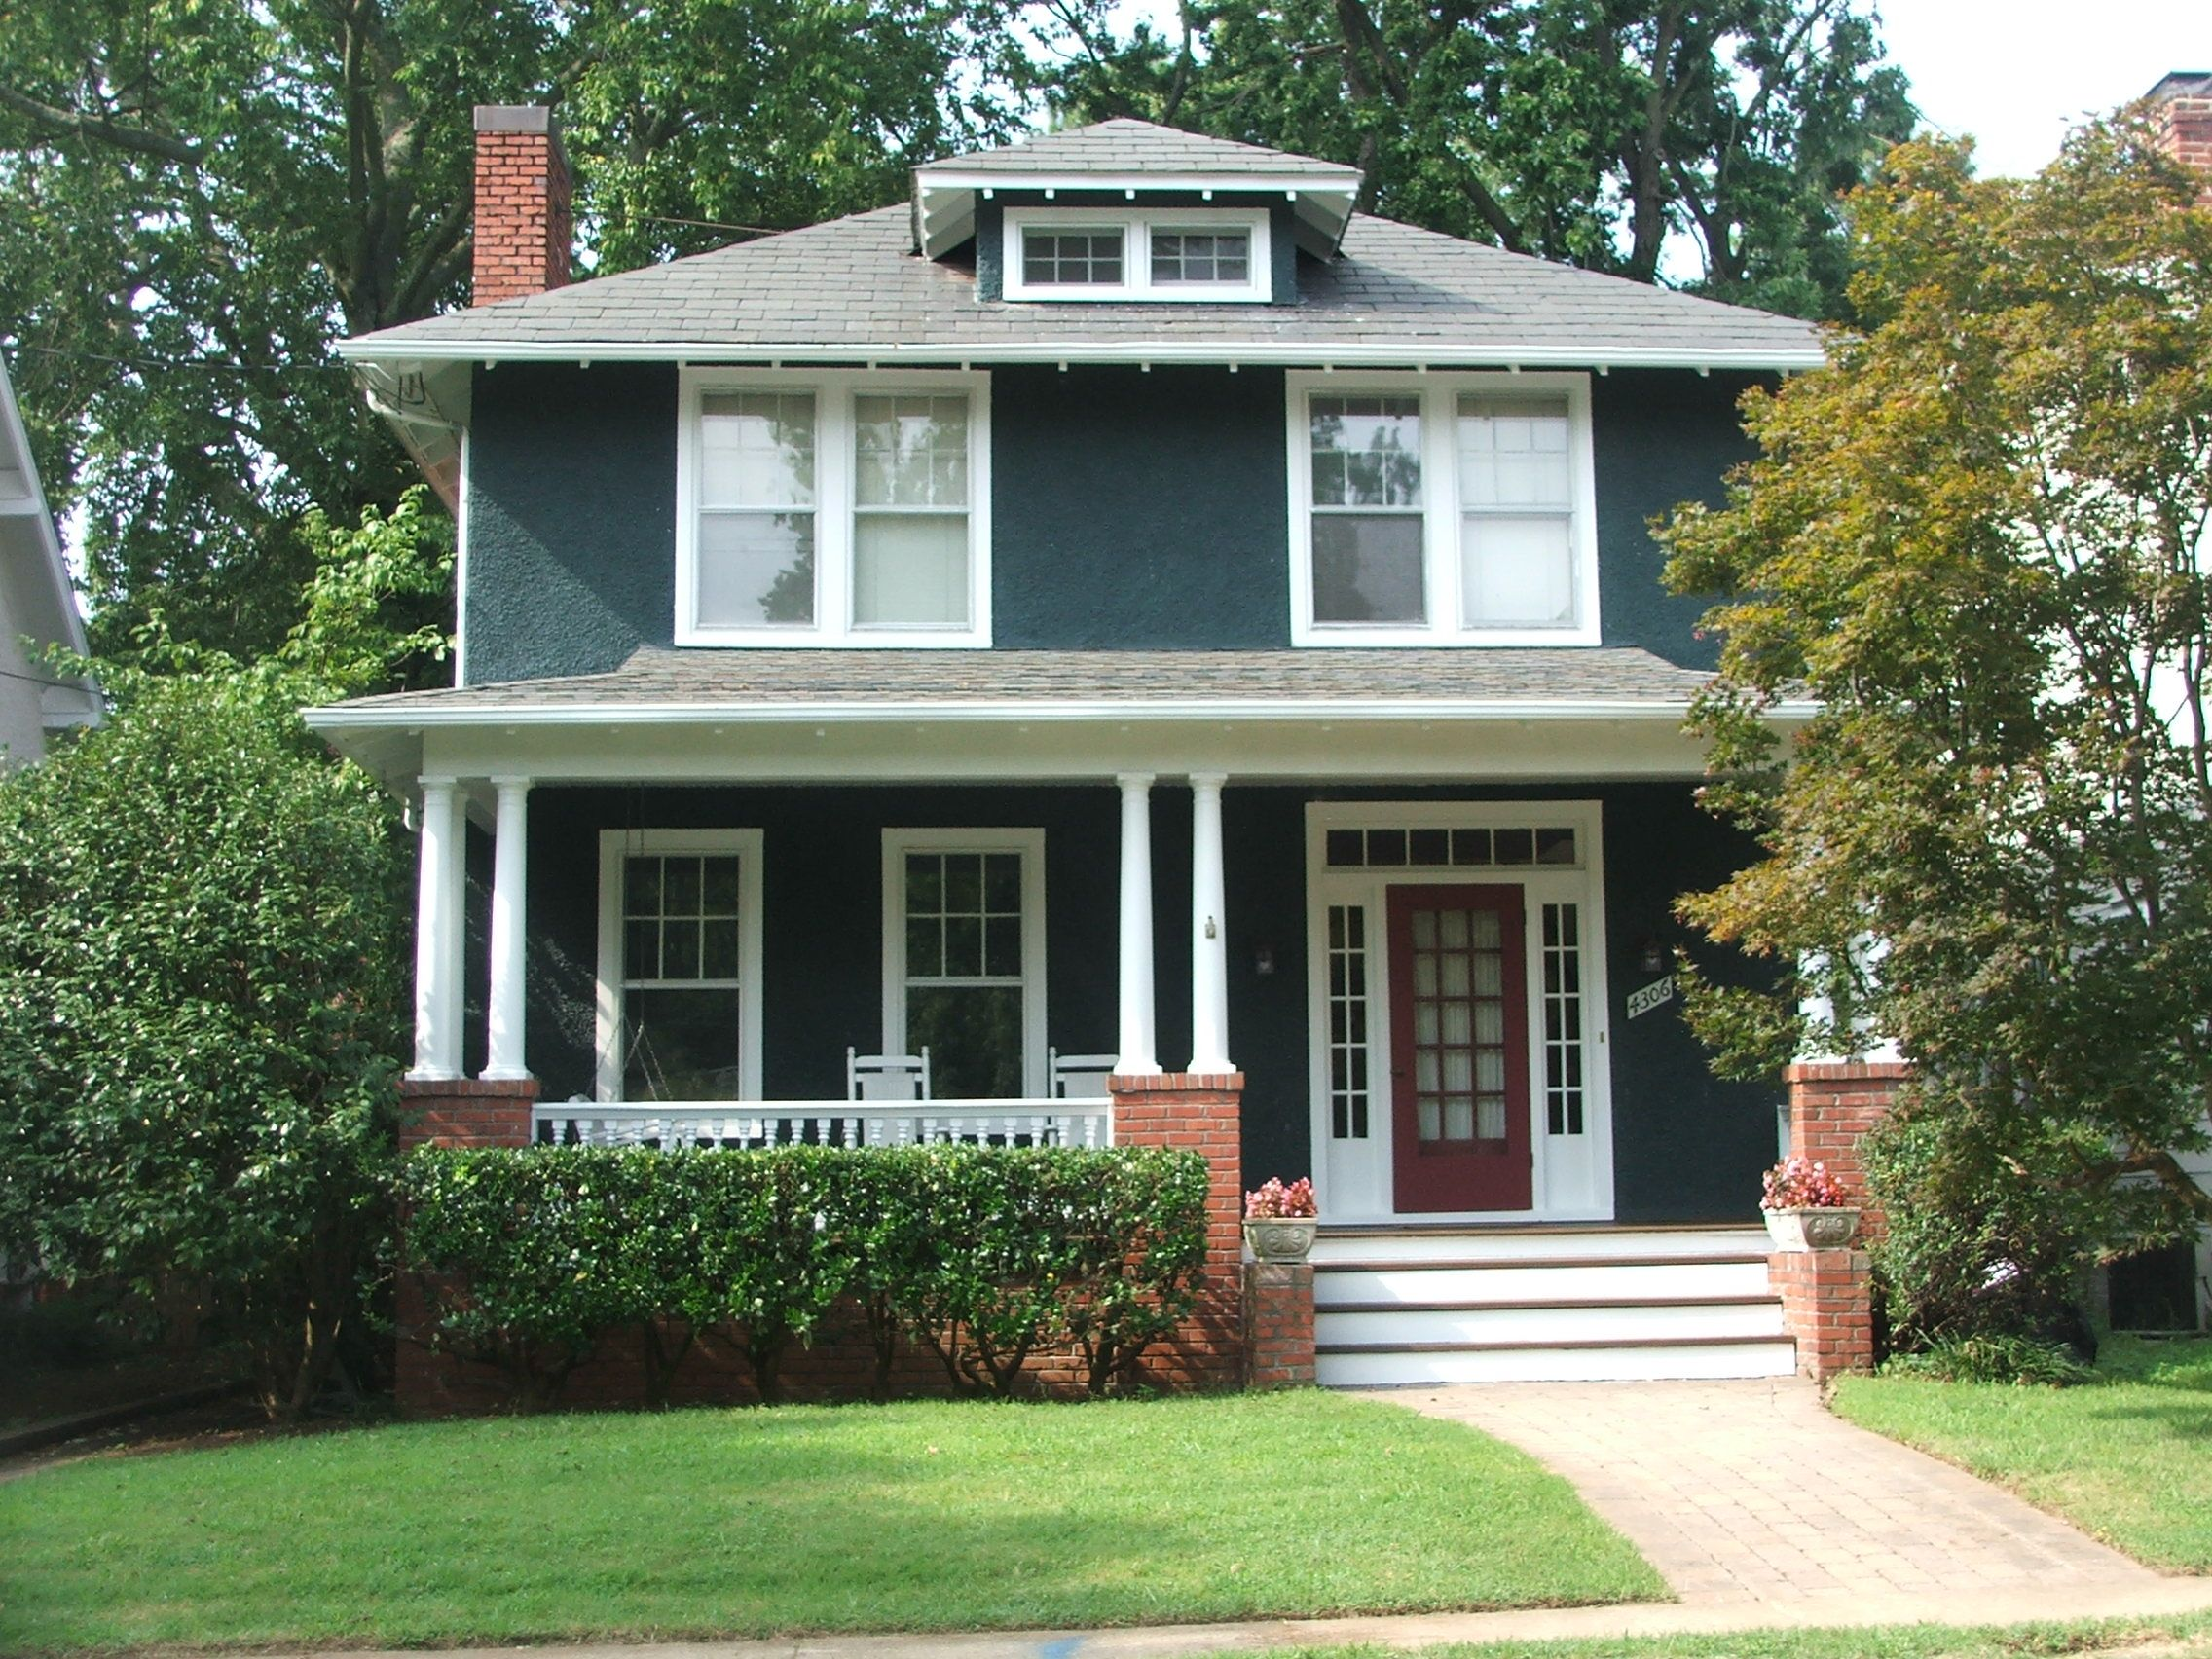 Diy idea for old suitcase american houses front porches for New american house style